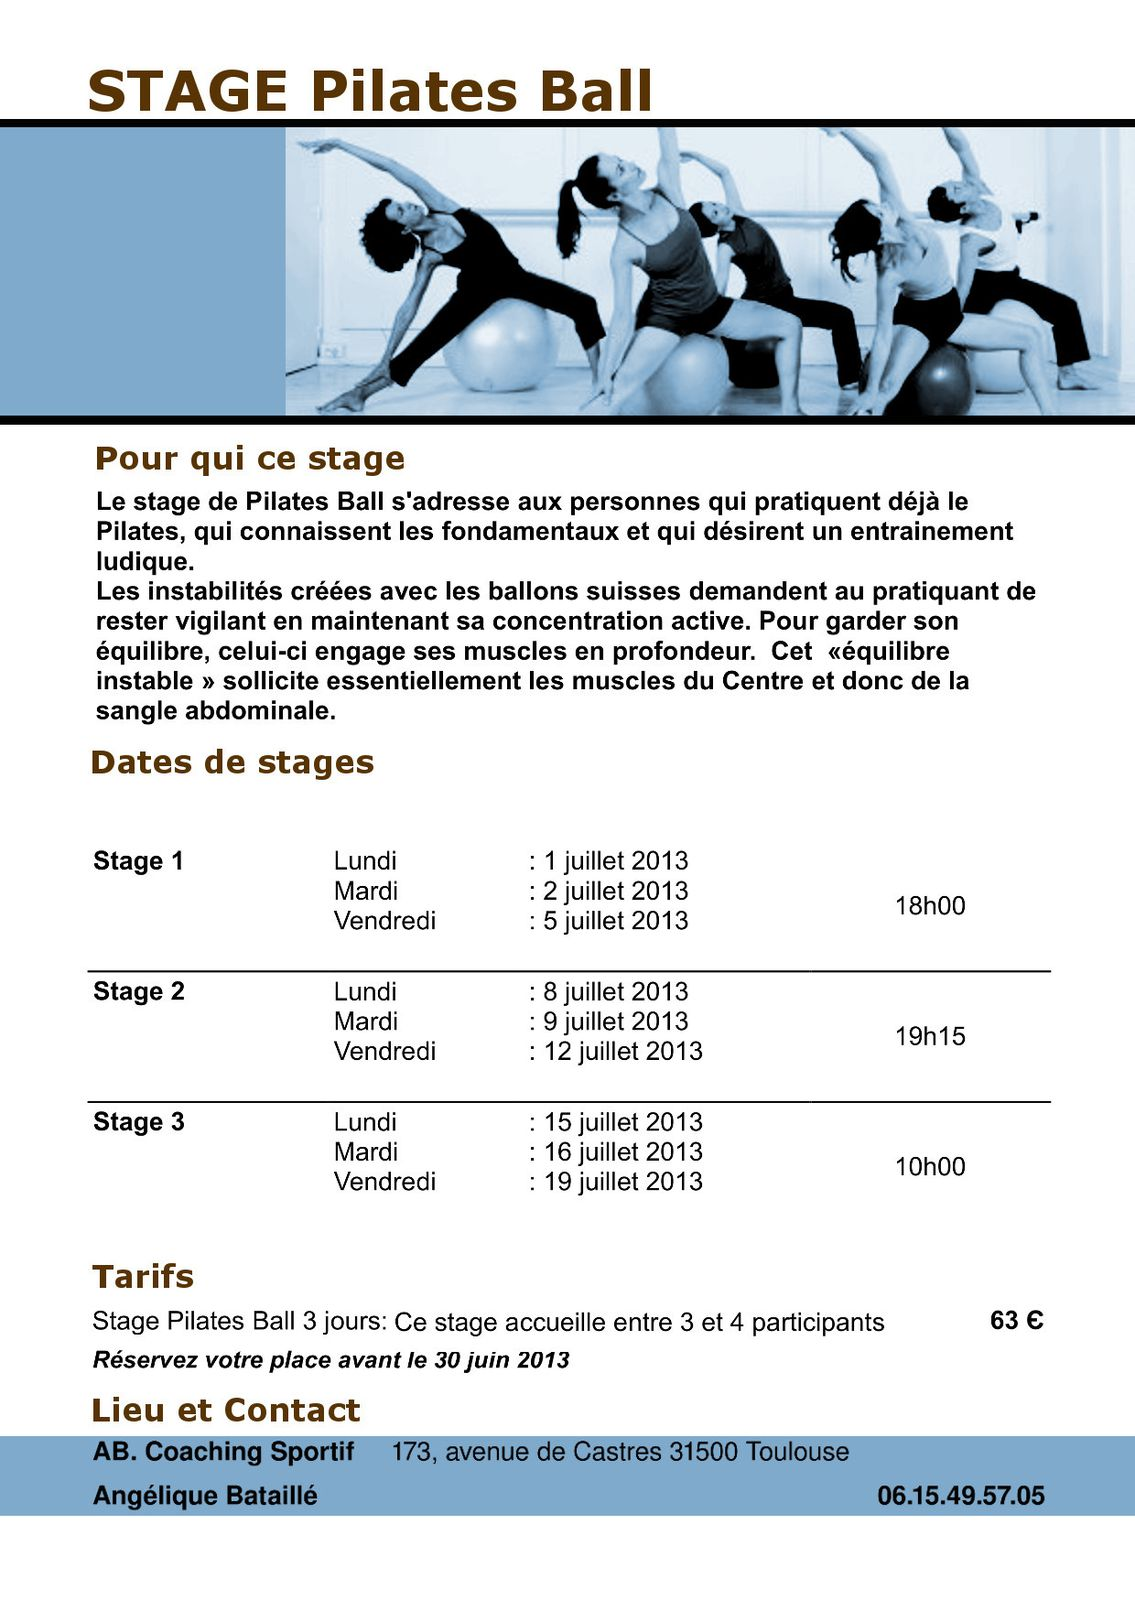 Stage Pilates Ball 2013